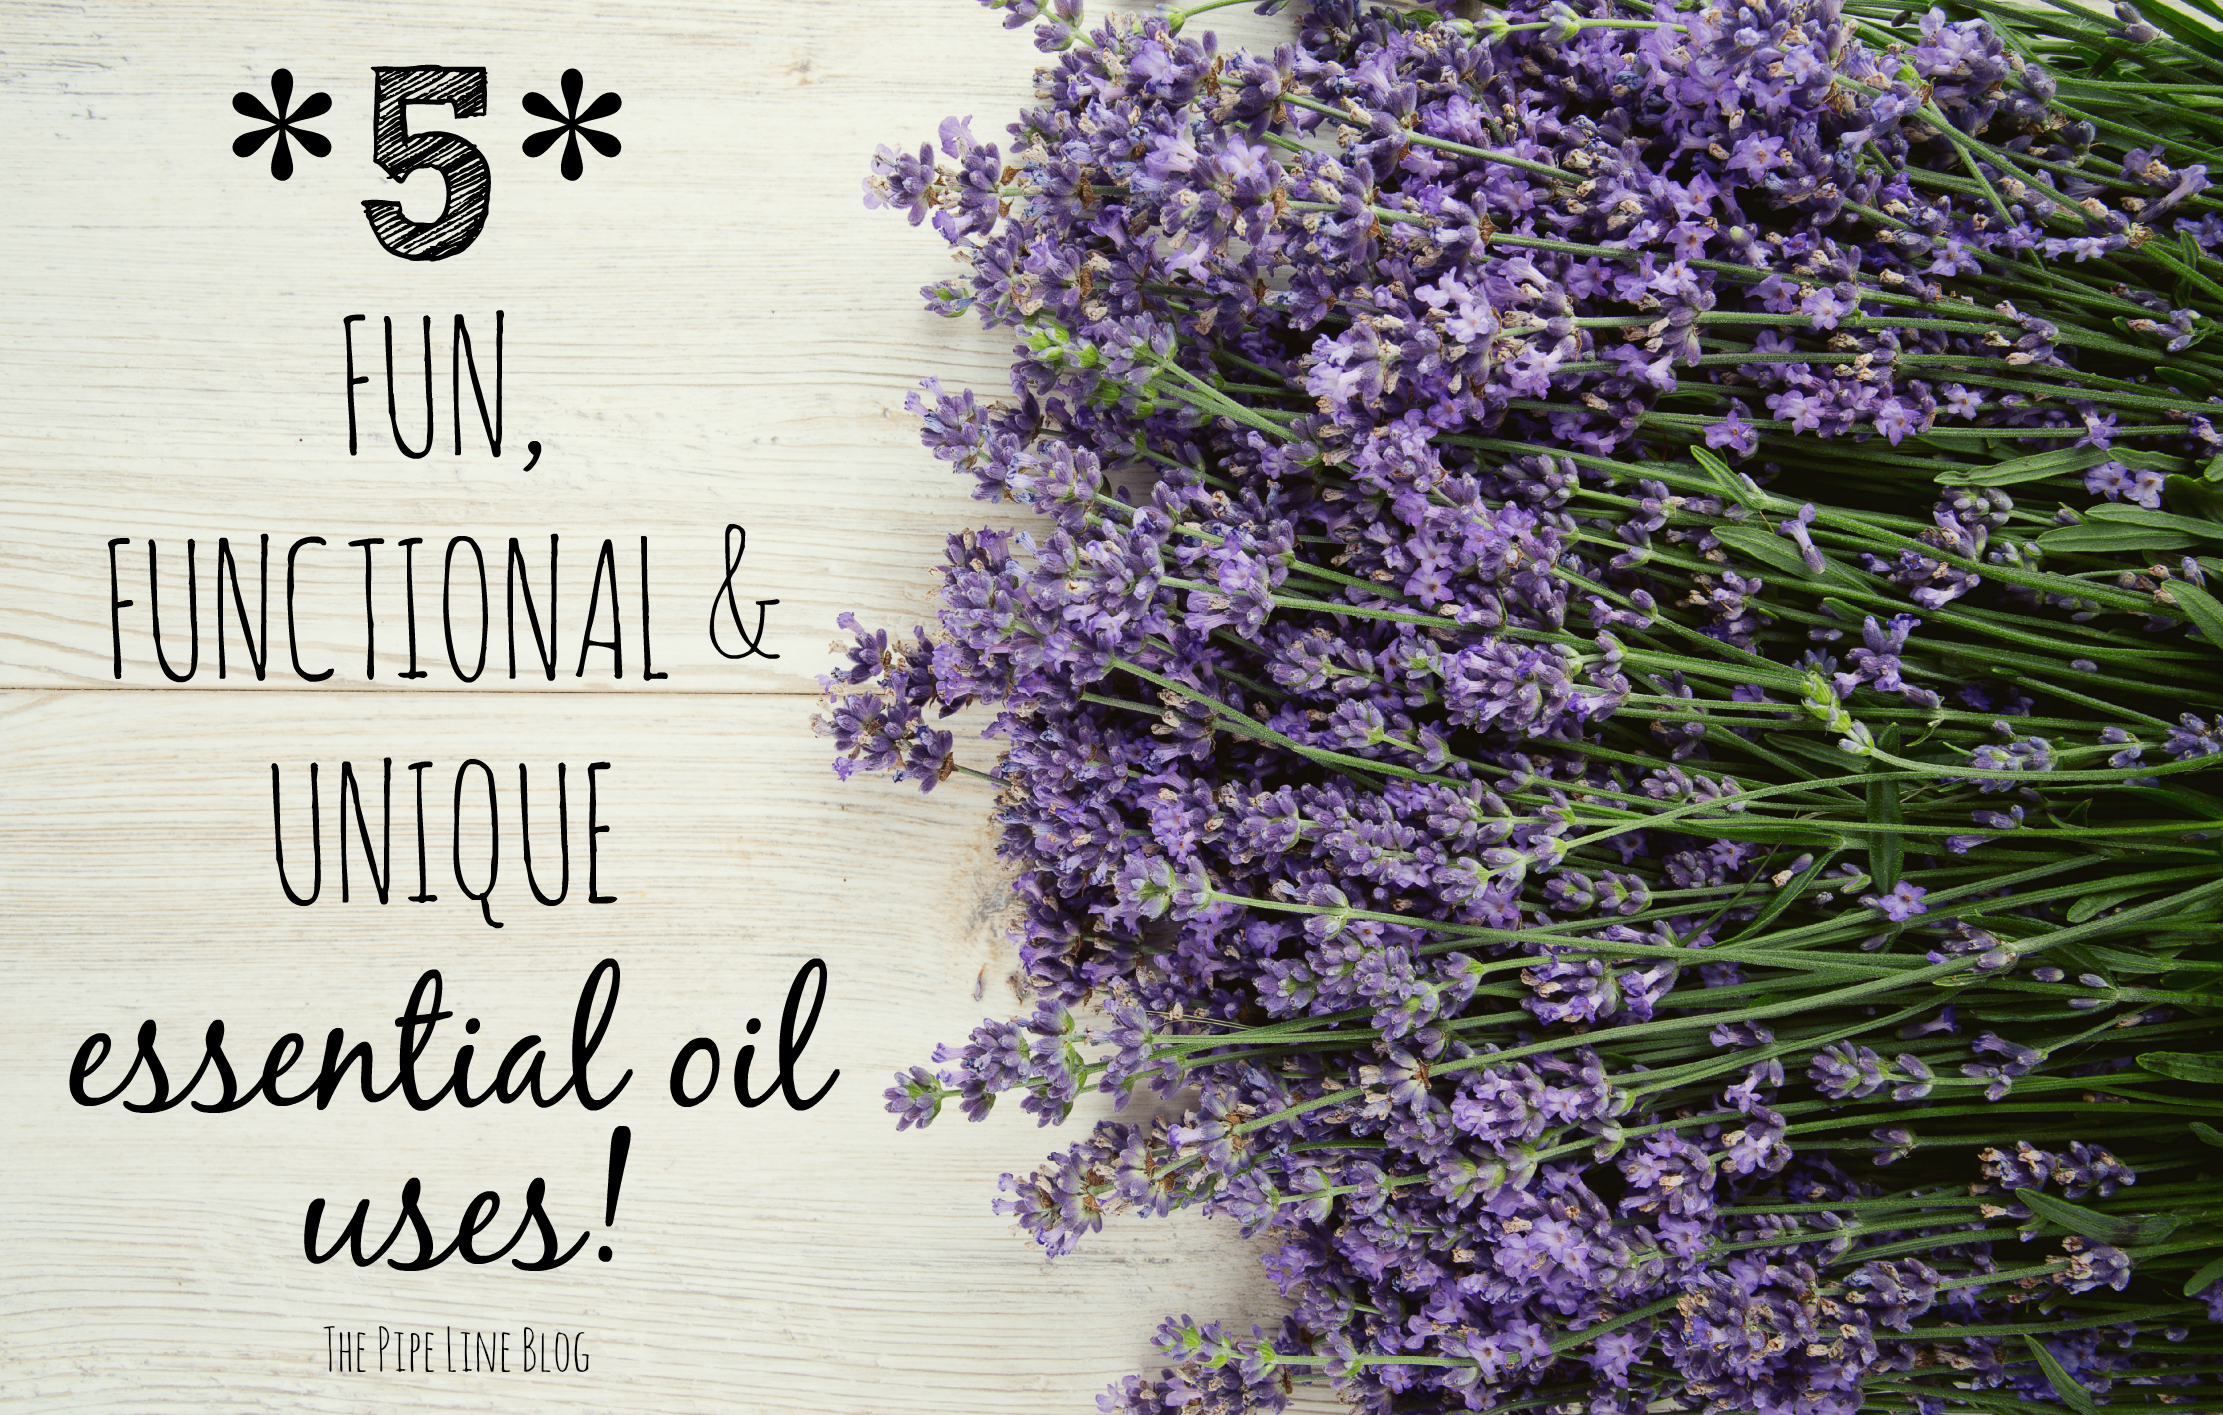 Piping Rock - The Pipe Line - 5 Fun, Functional & Unique Essential Oils Uses